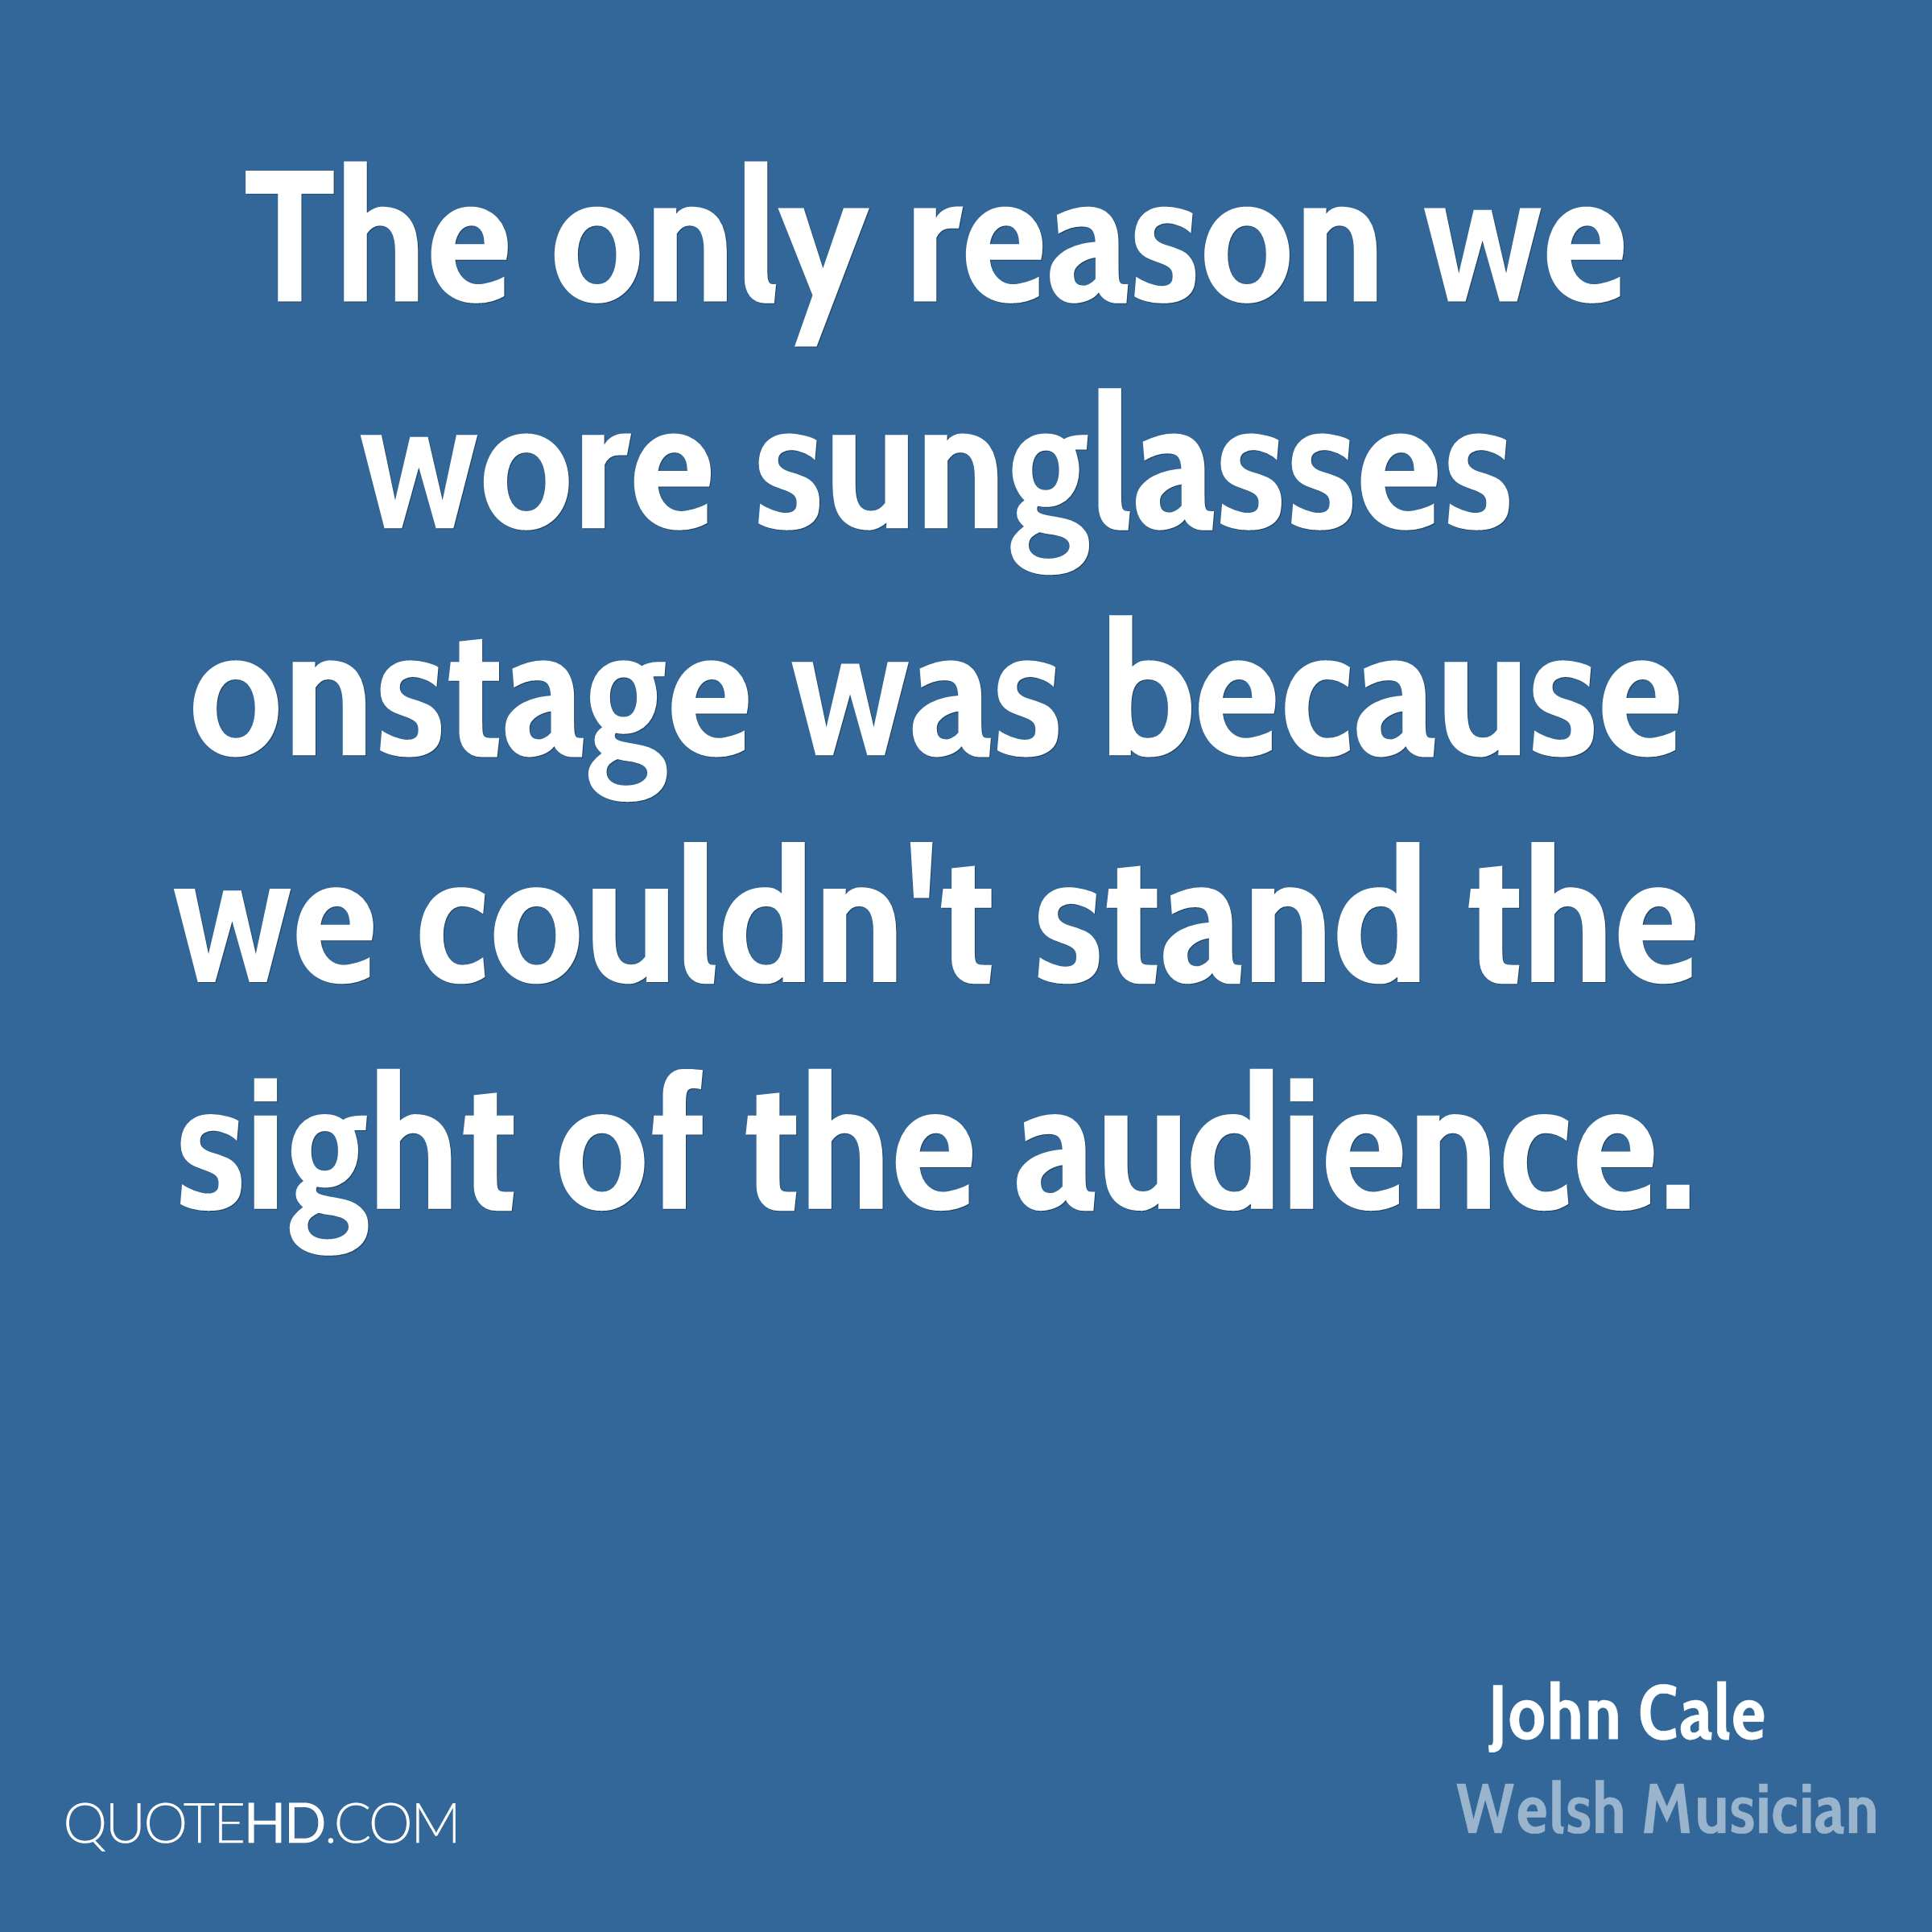 The only reason we wore sunglasses onstage was because we couldn't stand the sight of the audience.